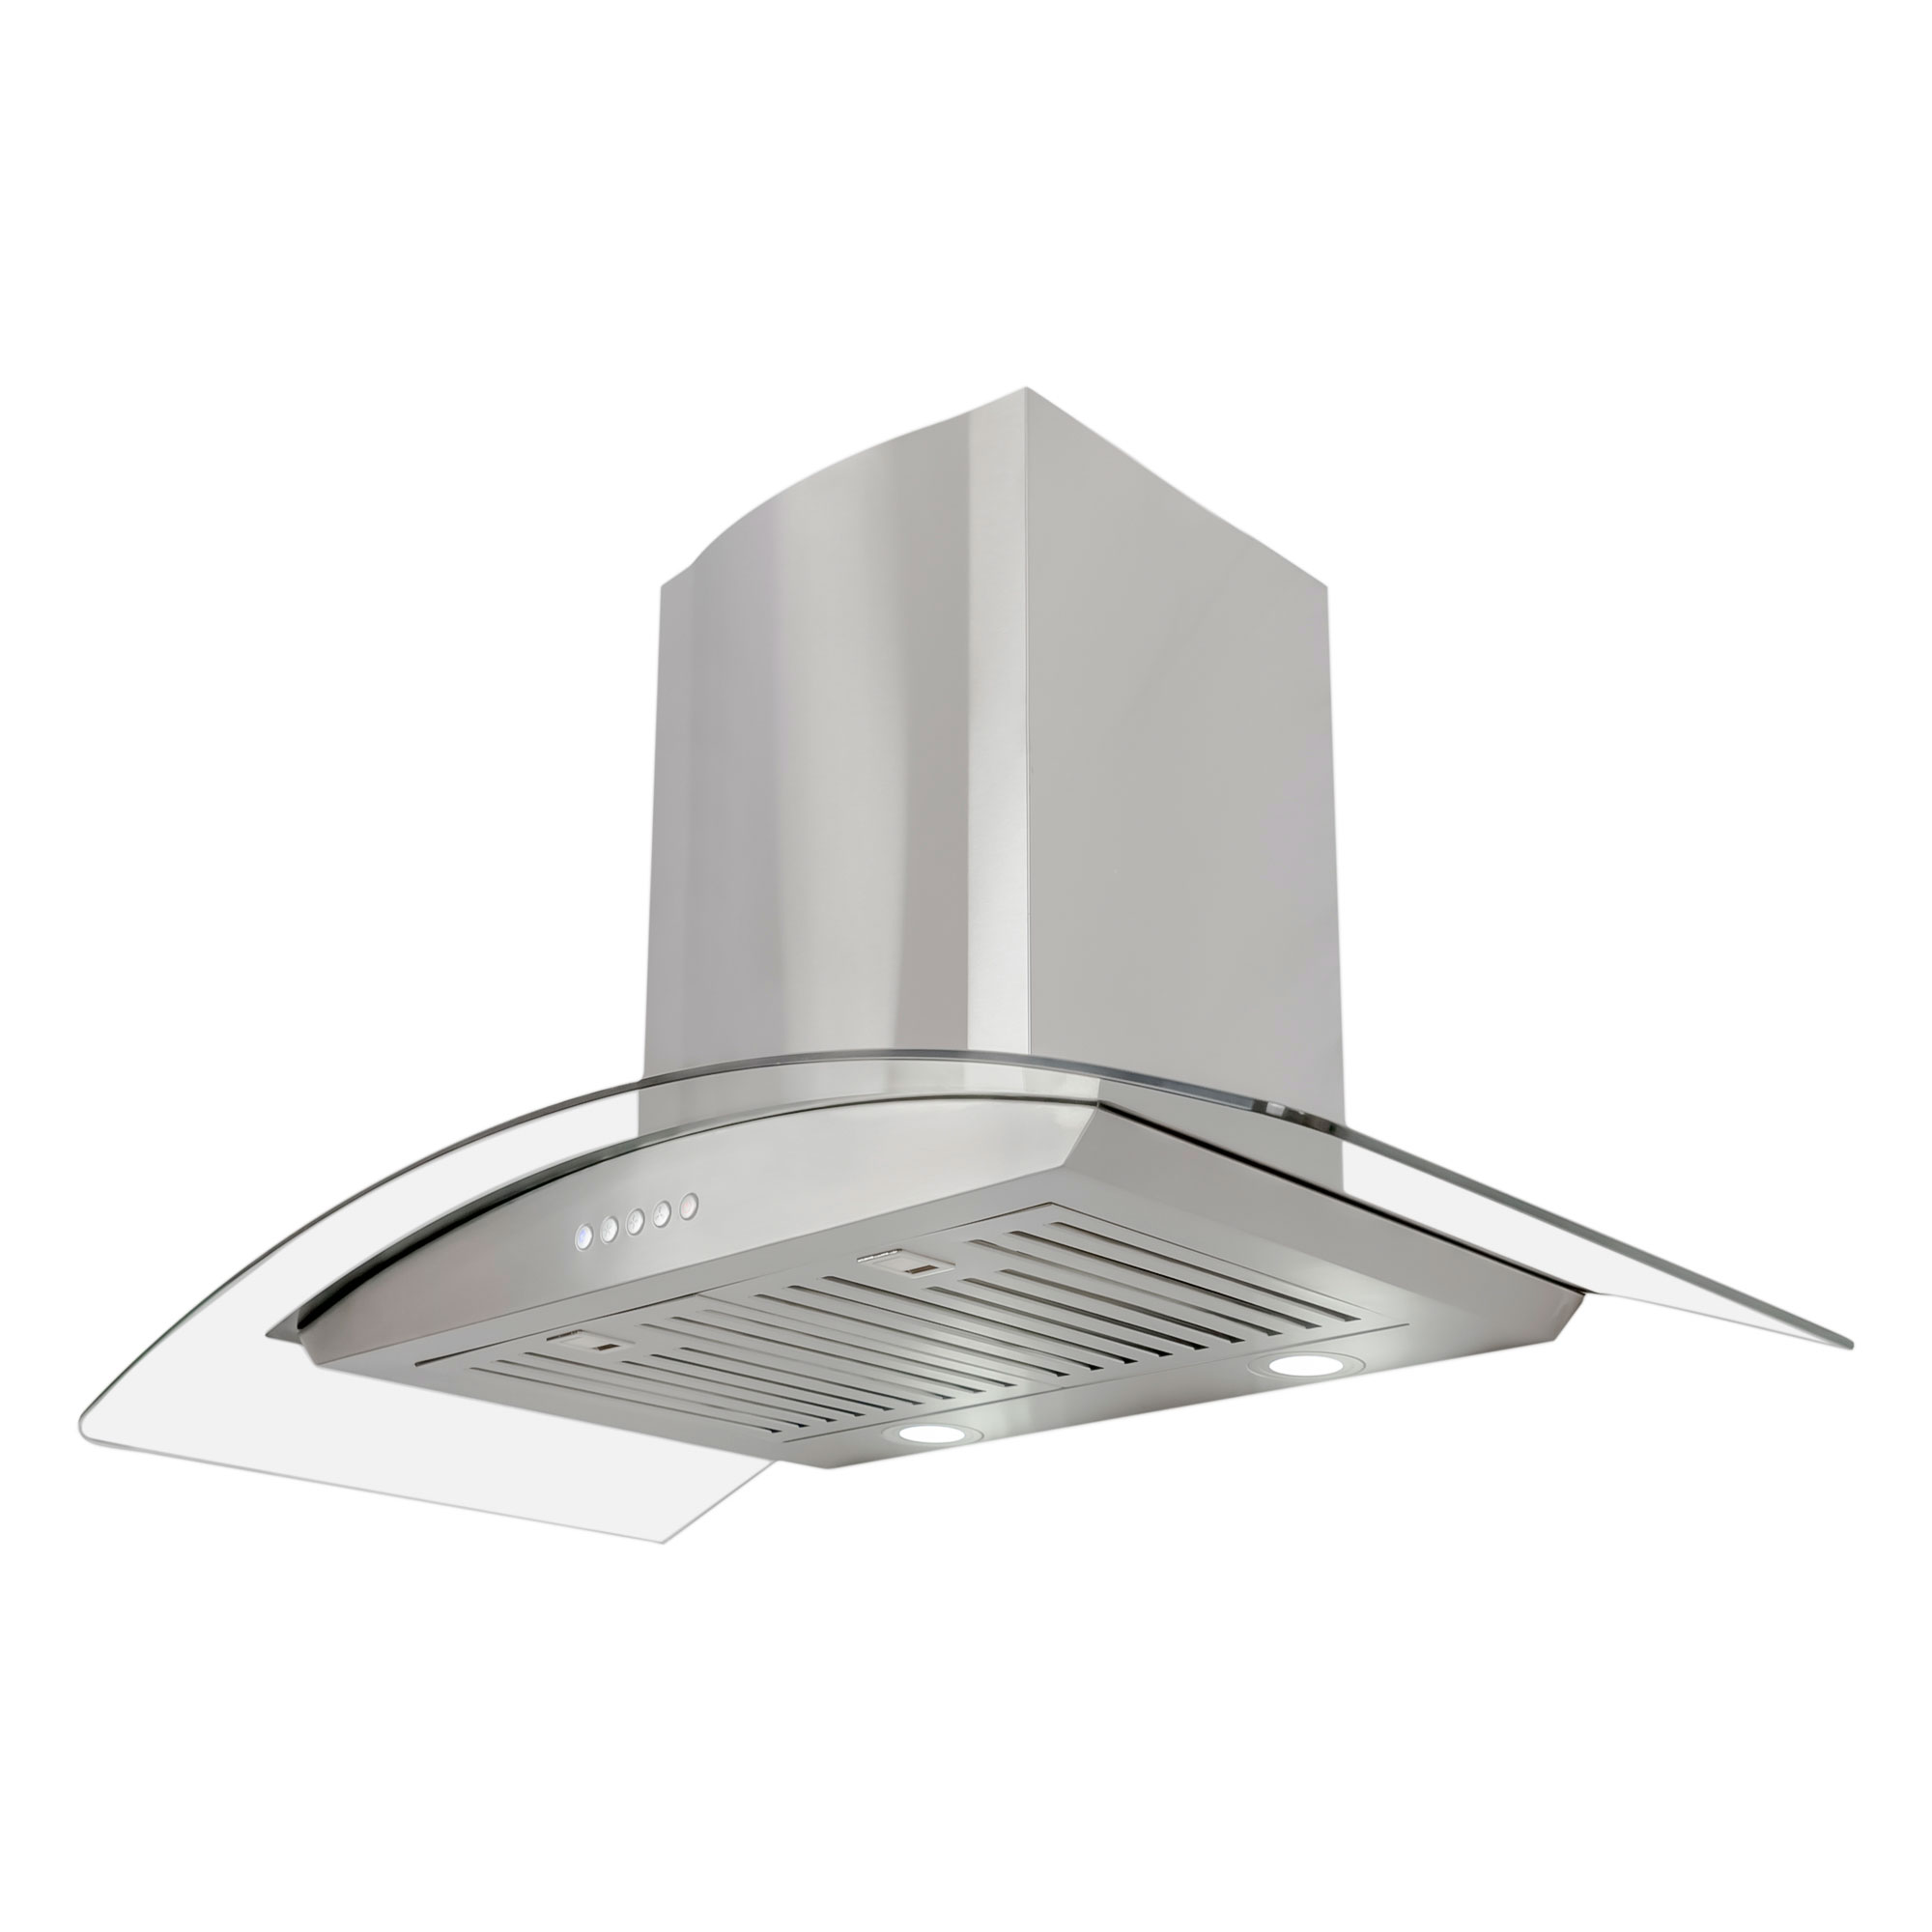 36 In. Wall Mount Range Hood Cosmo Appliances (668A900-DL